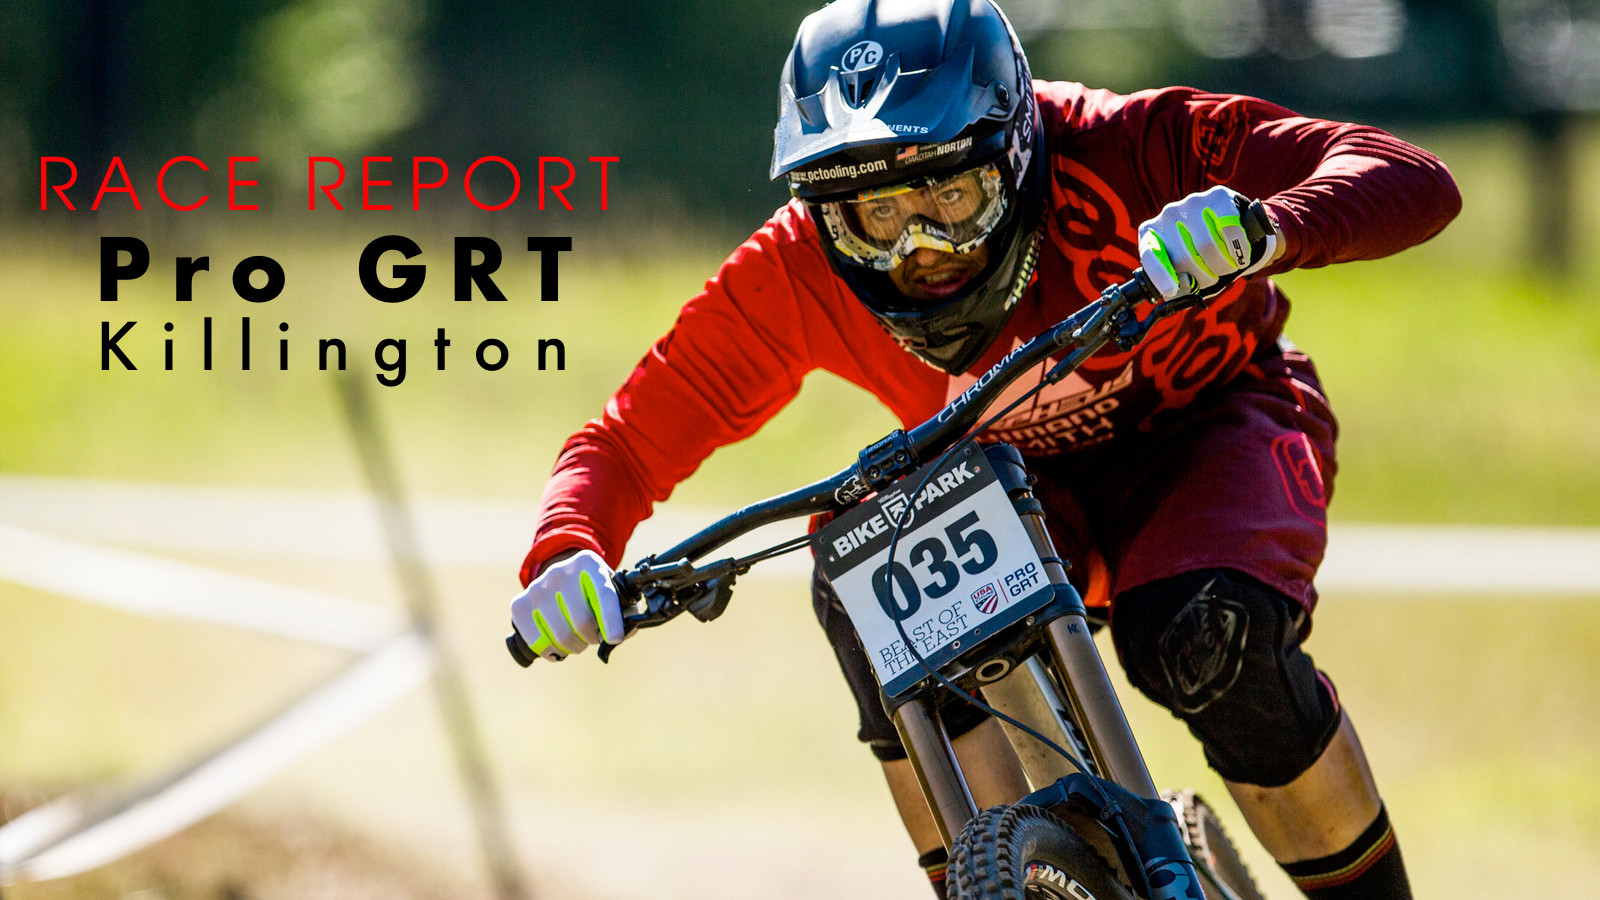 Pro GRT Killington Race Report - Befriending The Beast